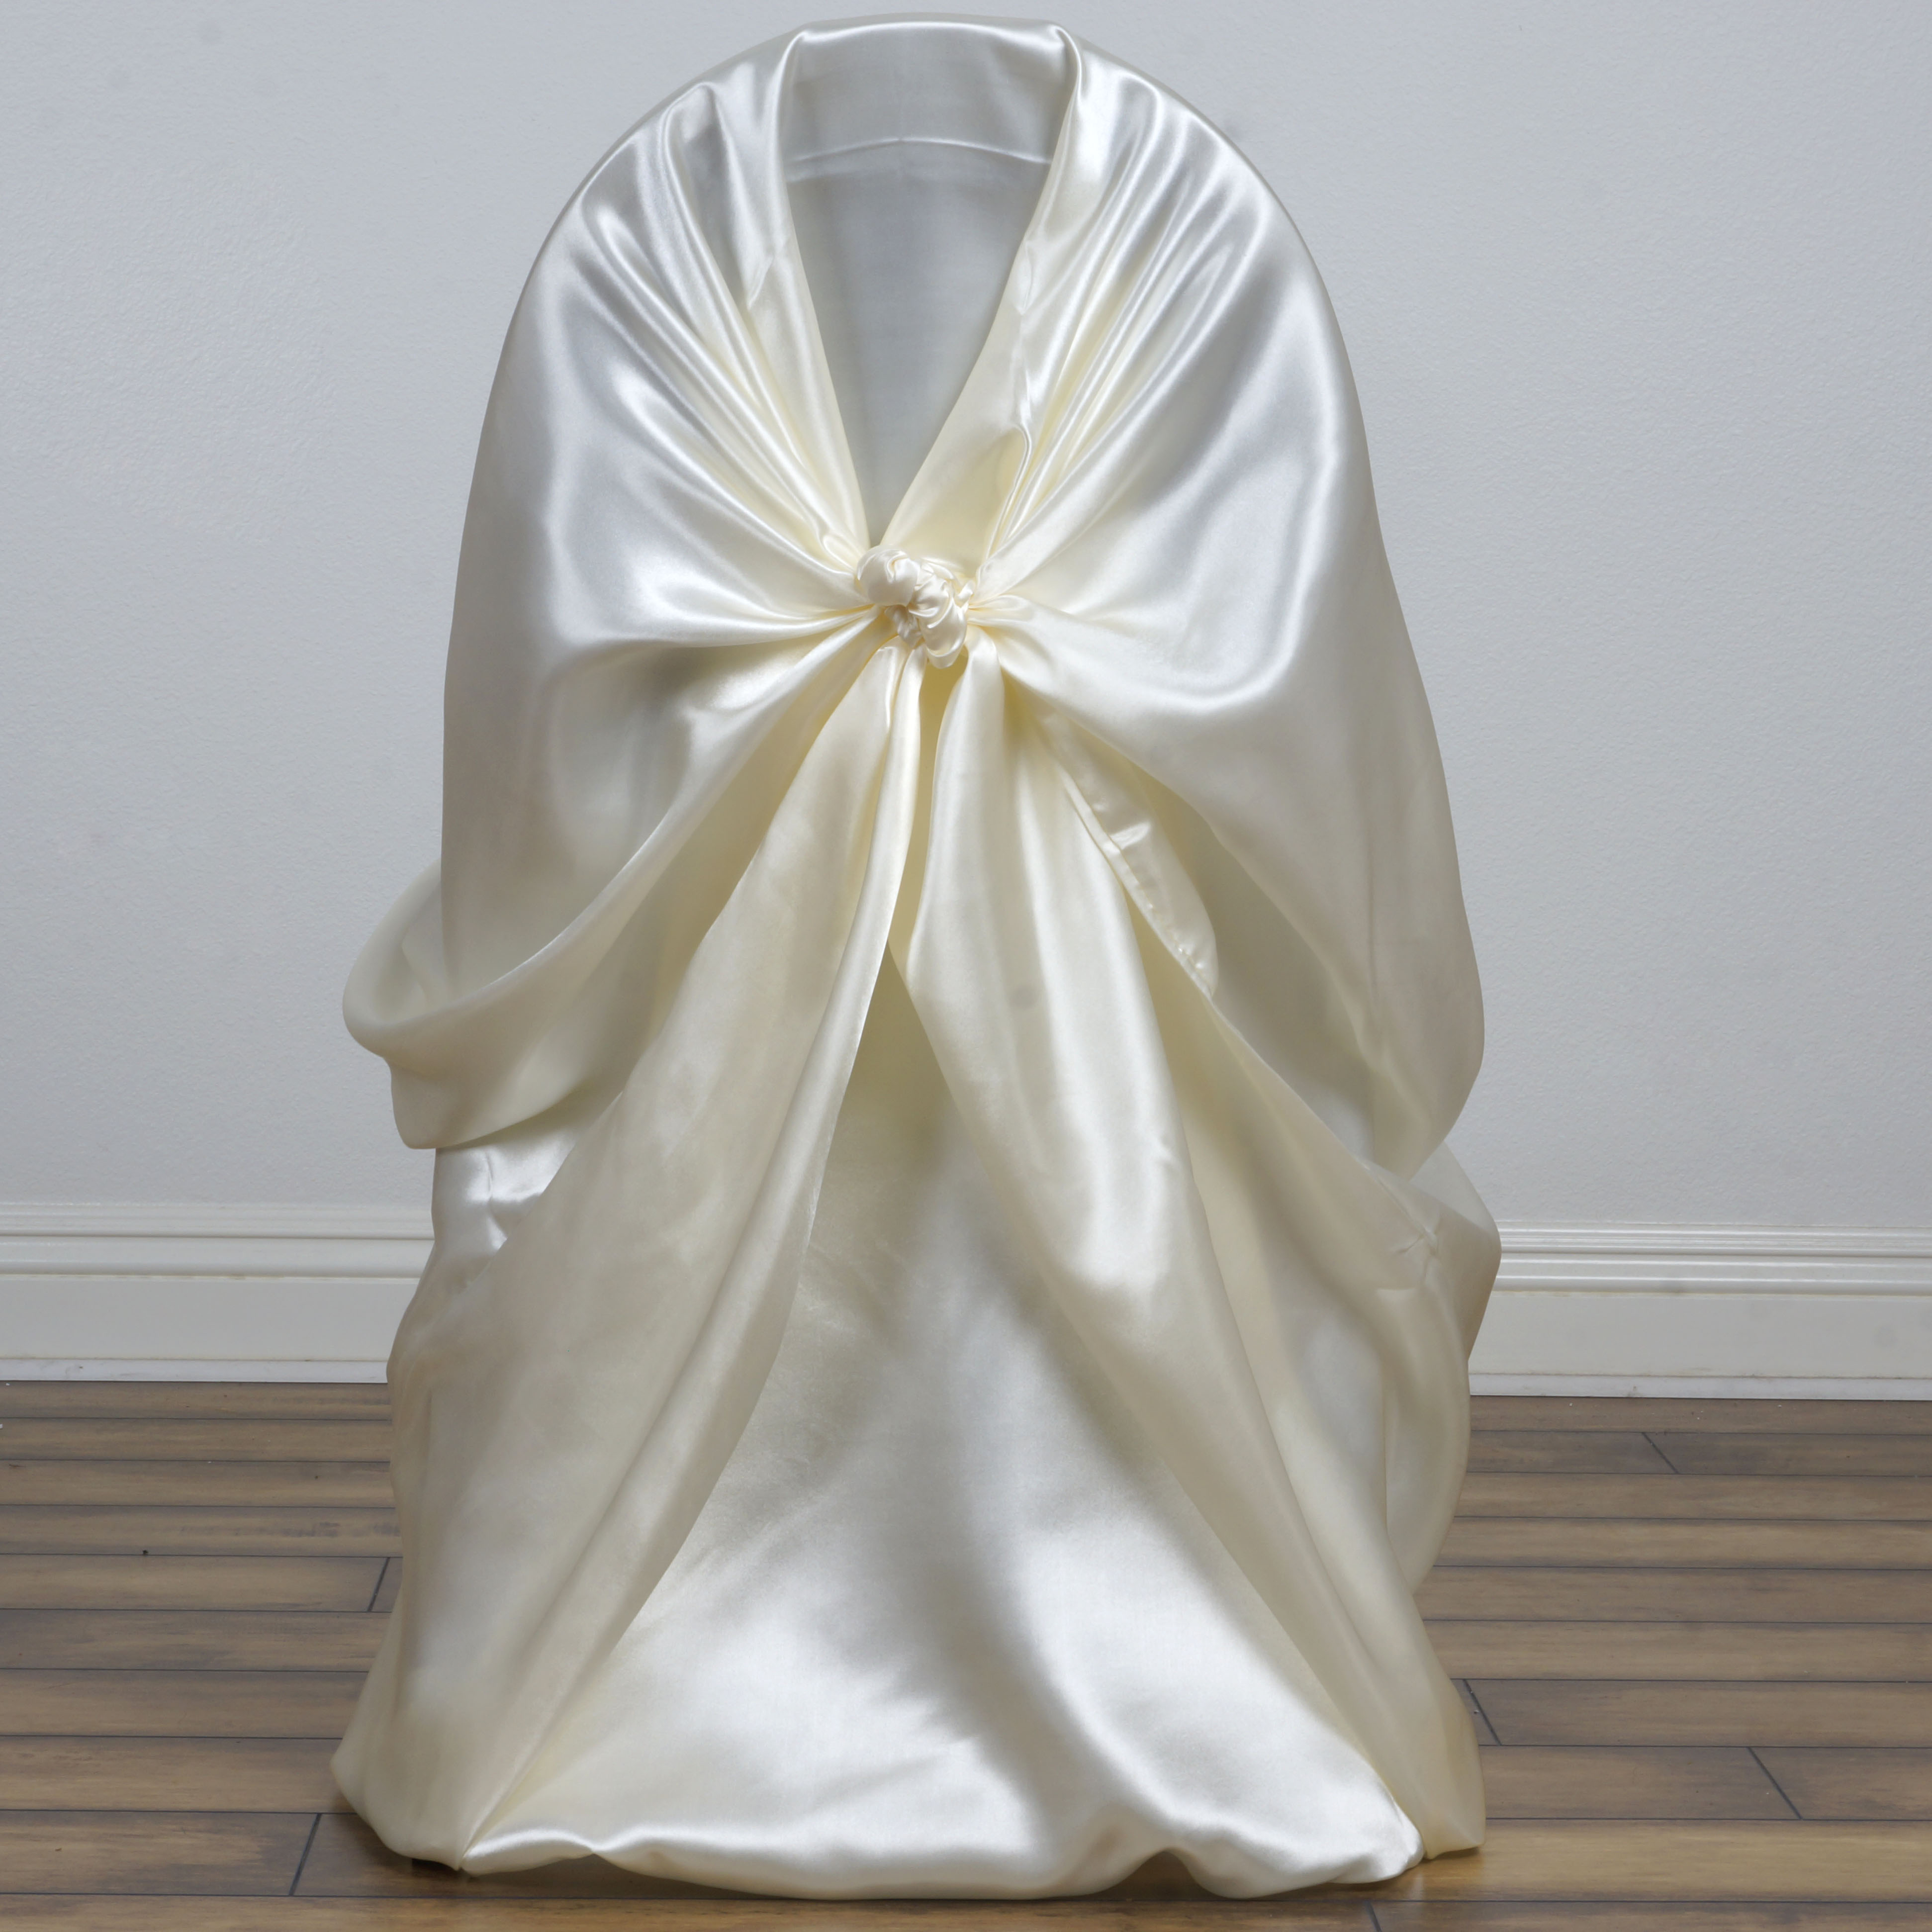 75 SATIN Universal Self Tie for any kind of CHAIR COVER Wedding